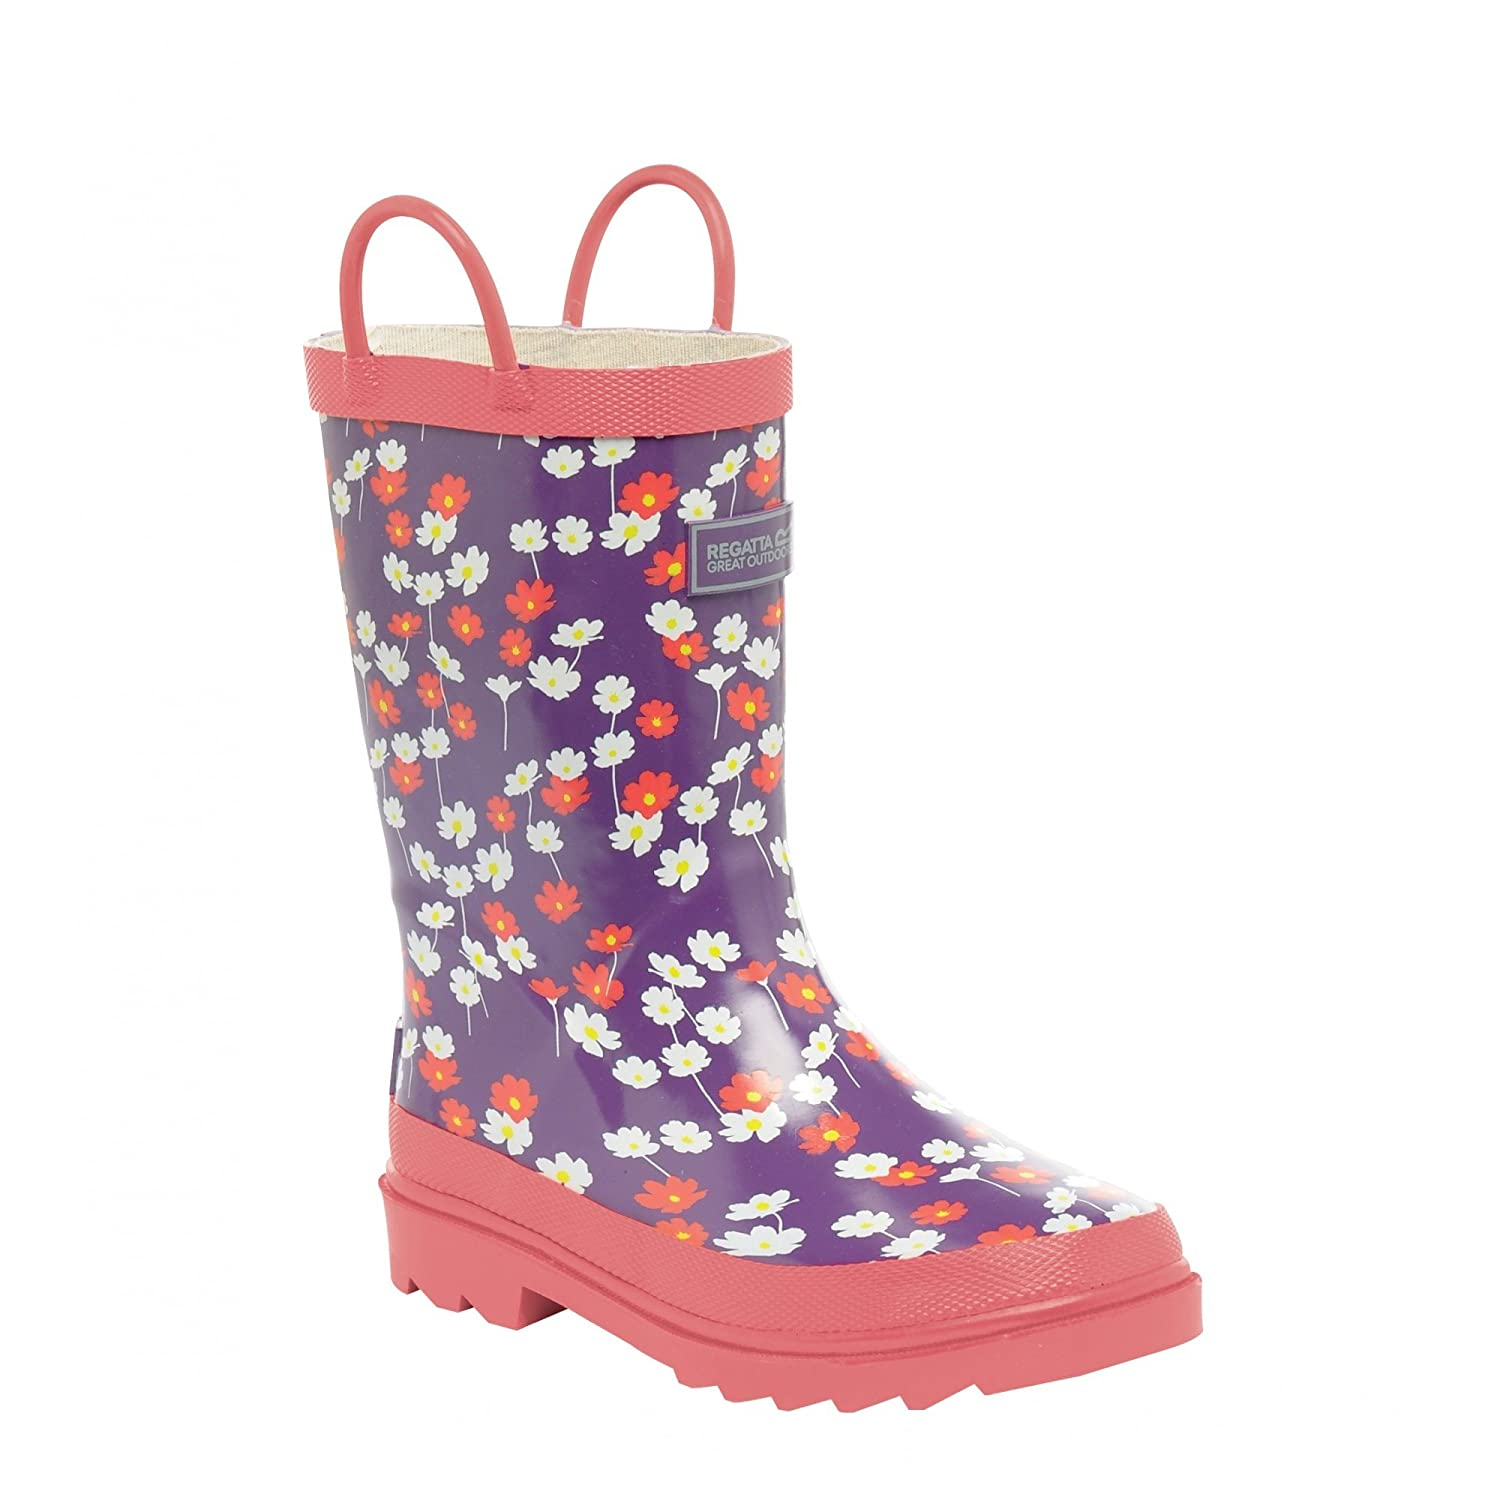 Regatta Minnow Jnr Welly, Unisex Kids' High Rise Hiking Boots: Regatta:  Amazon.co.uk: Shoes & Bags